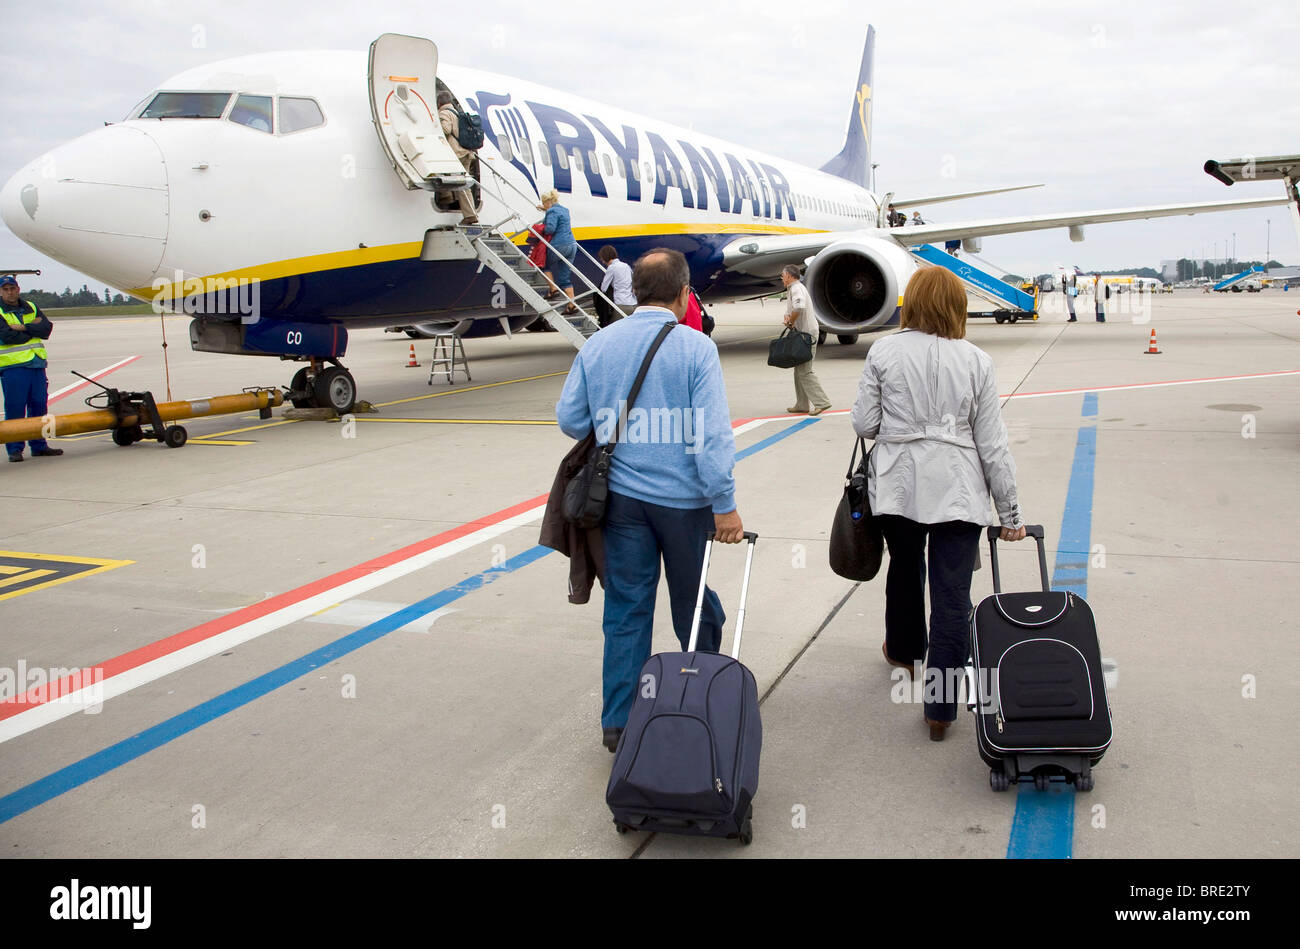 Passengers boarding a Boeing 737 of the low cost airline Ryanair at Frankfurt-Hahn Airport, Hahn Airport - Stock Image